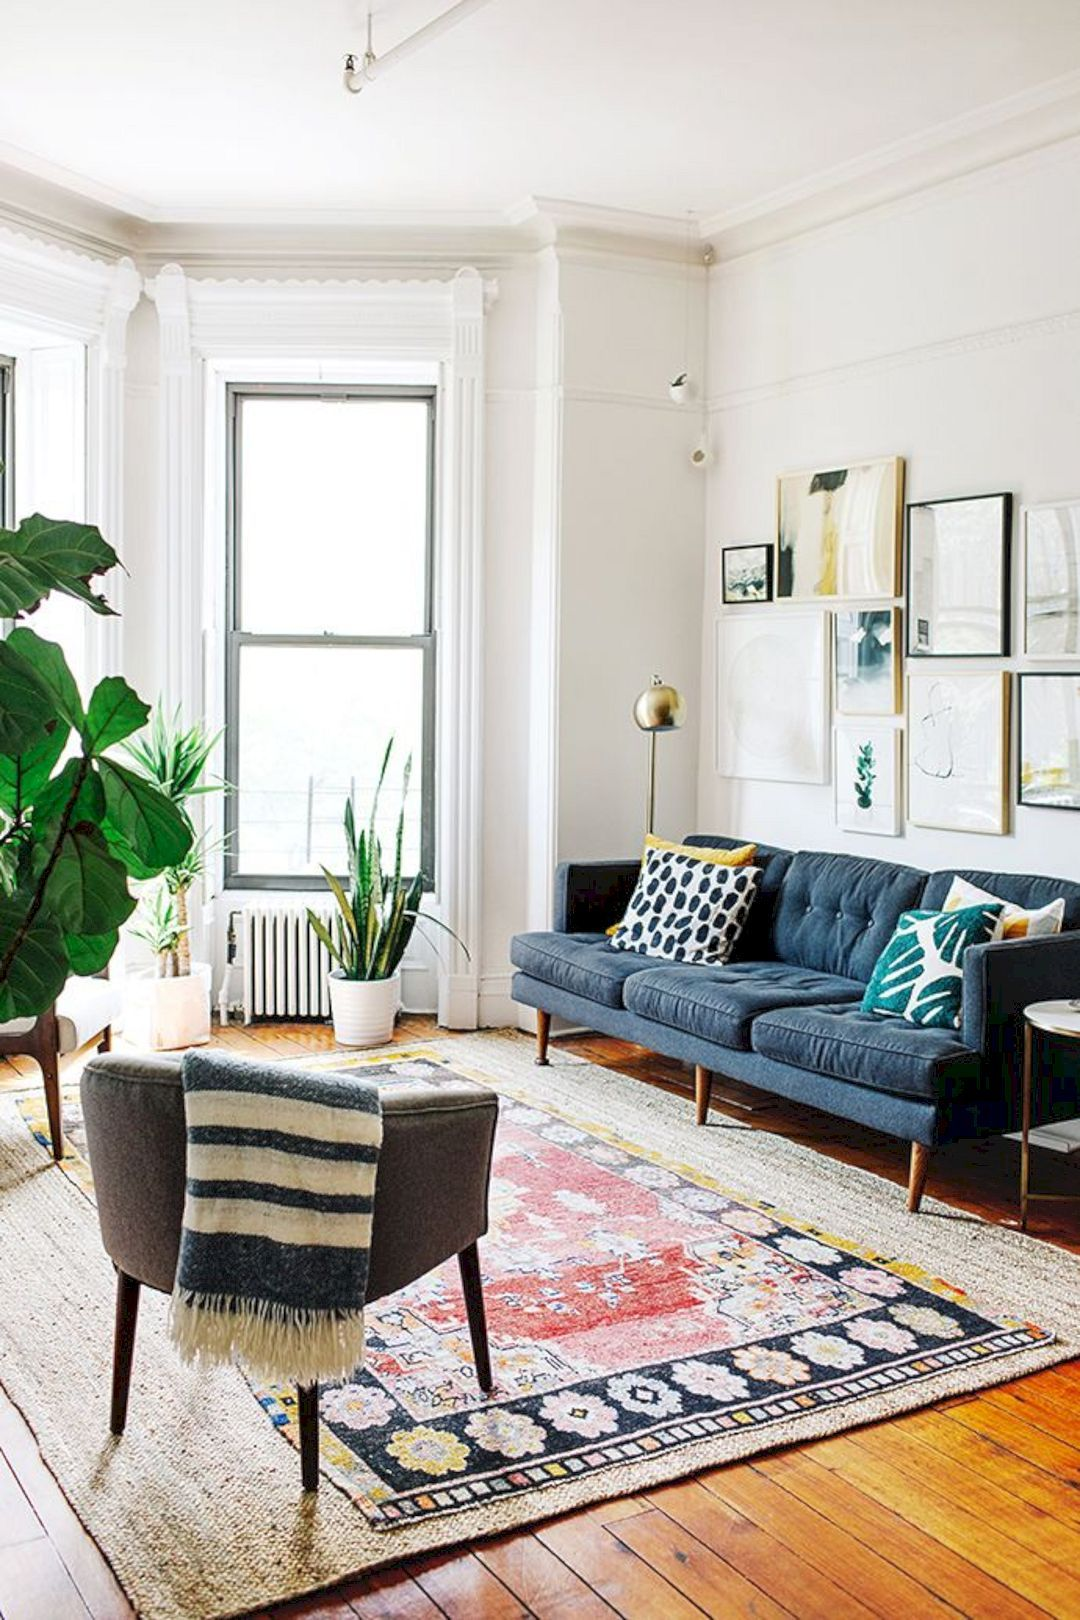 20 Stunning Small Living Room Decorating Ideas